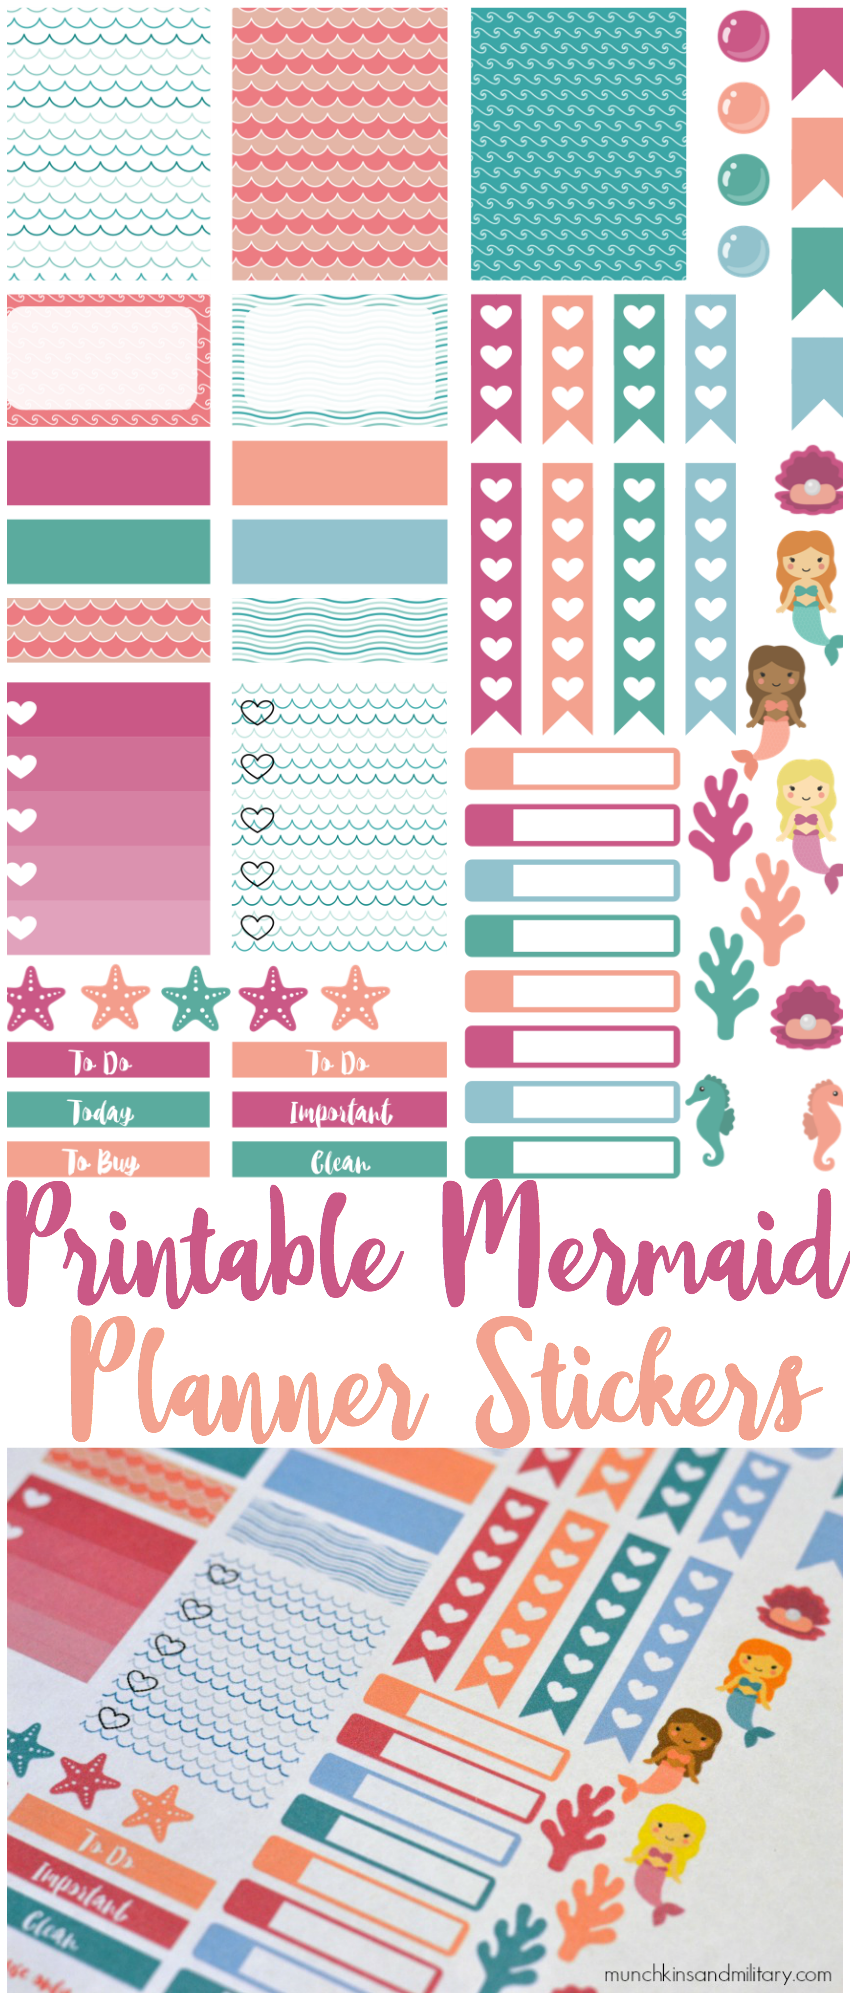 printable mermaid stickers frees life planner and 4 free printable mermaid planner stickers from munchkins and the miltary